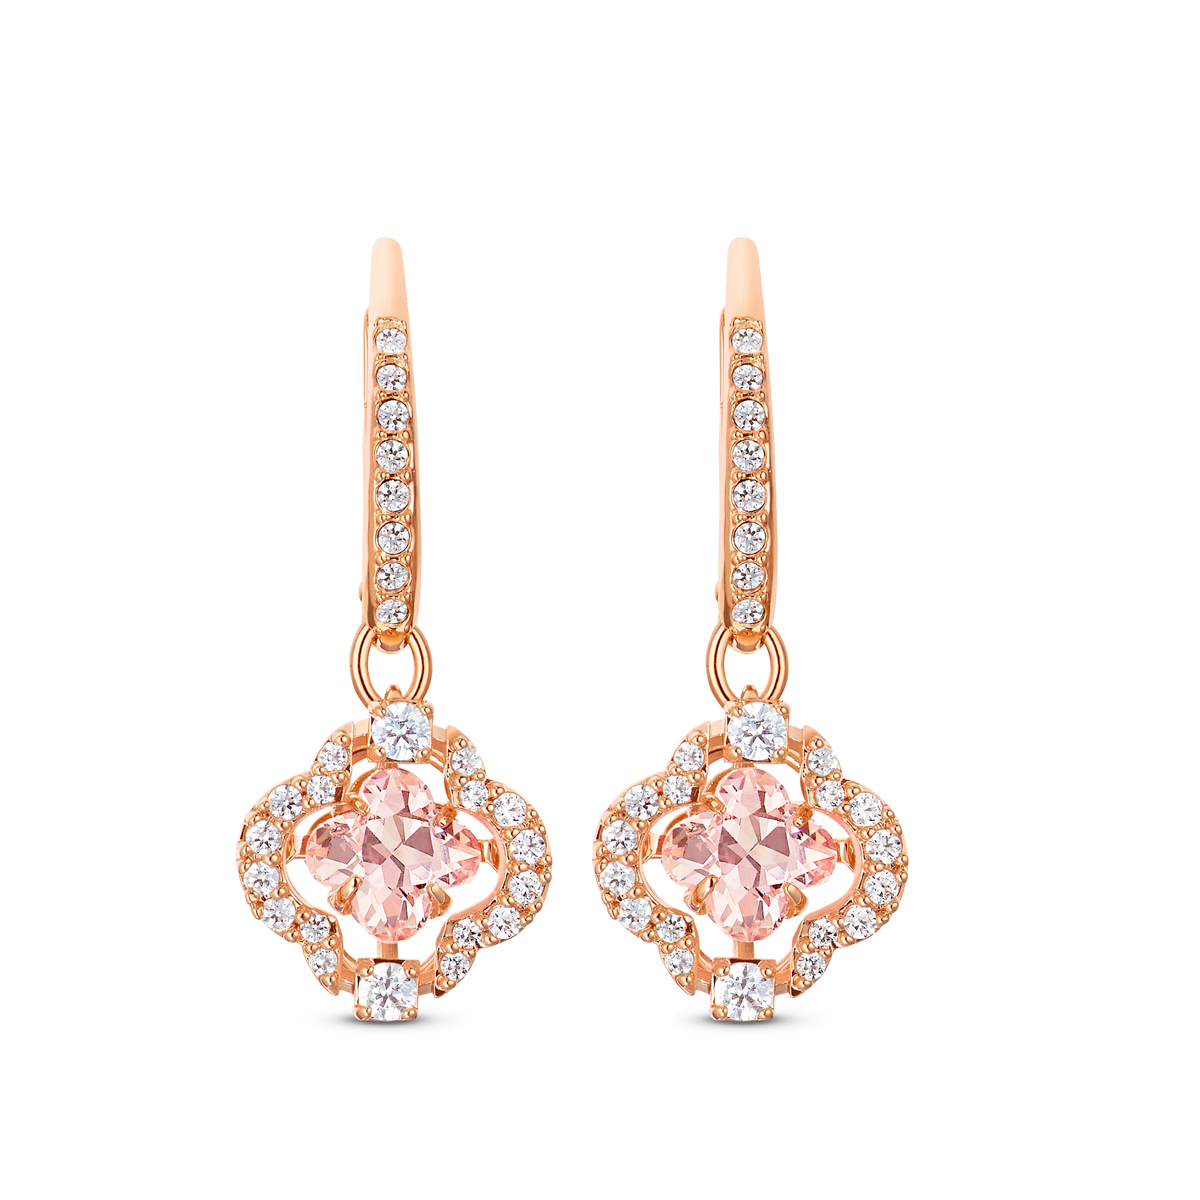 Swarovski Sparkling Dance Pierced Earrings Clover Crystal Rose Gold